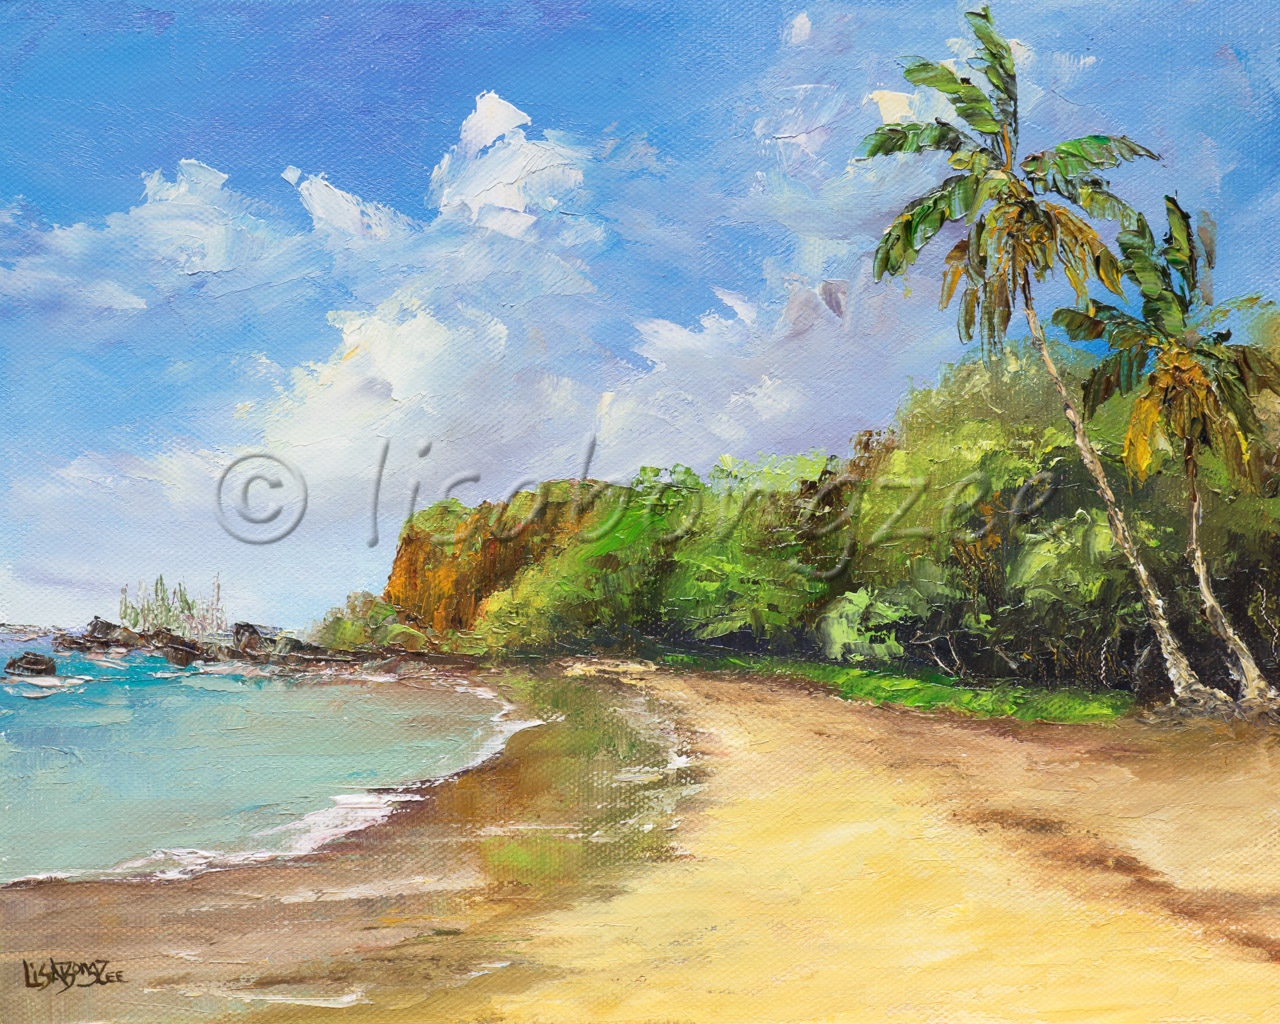 original oil of Hamoa beach in Hana Maui. An empty beach with trees and bushes lining shore and a single palm tree to the right.